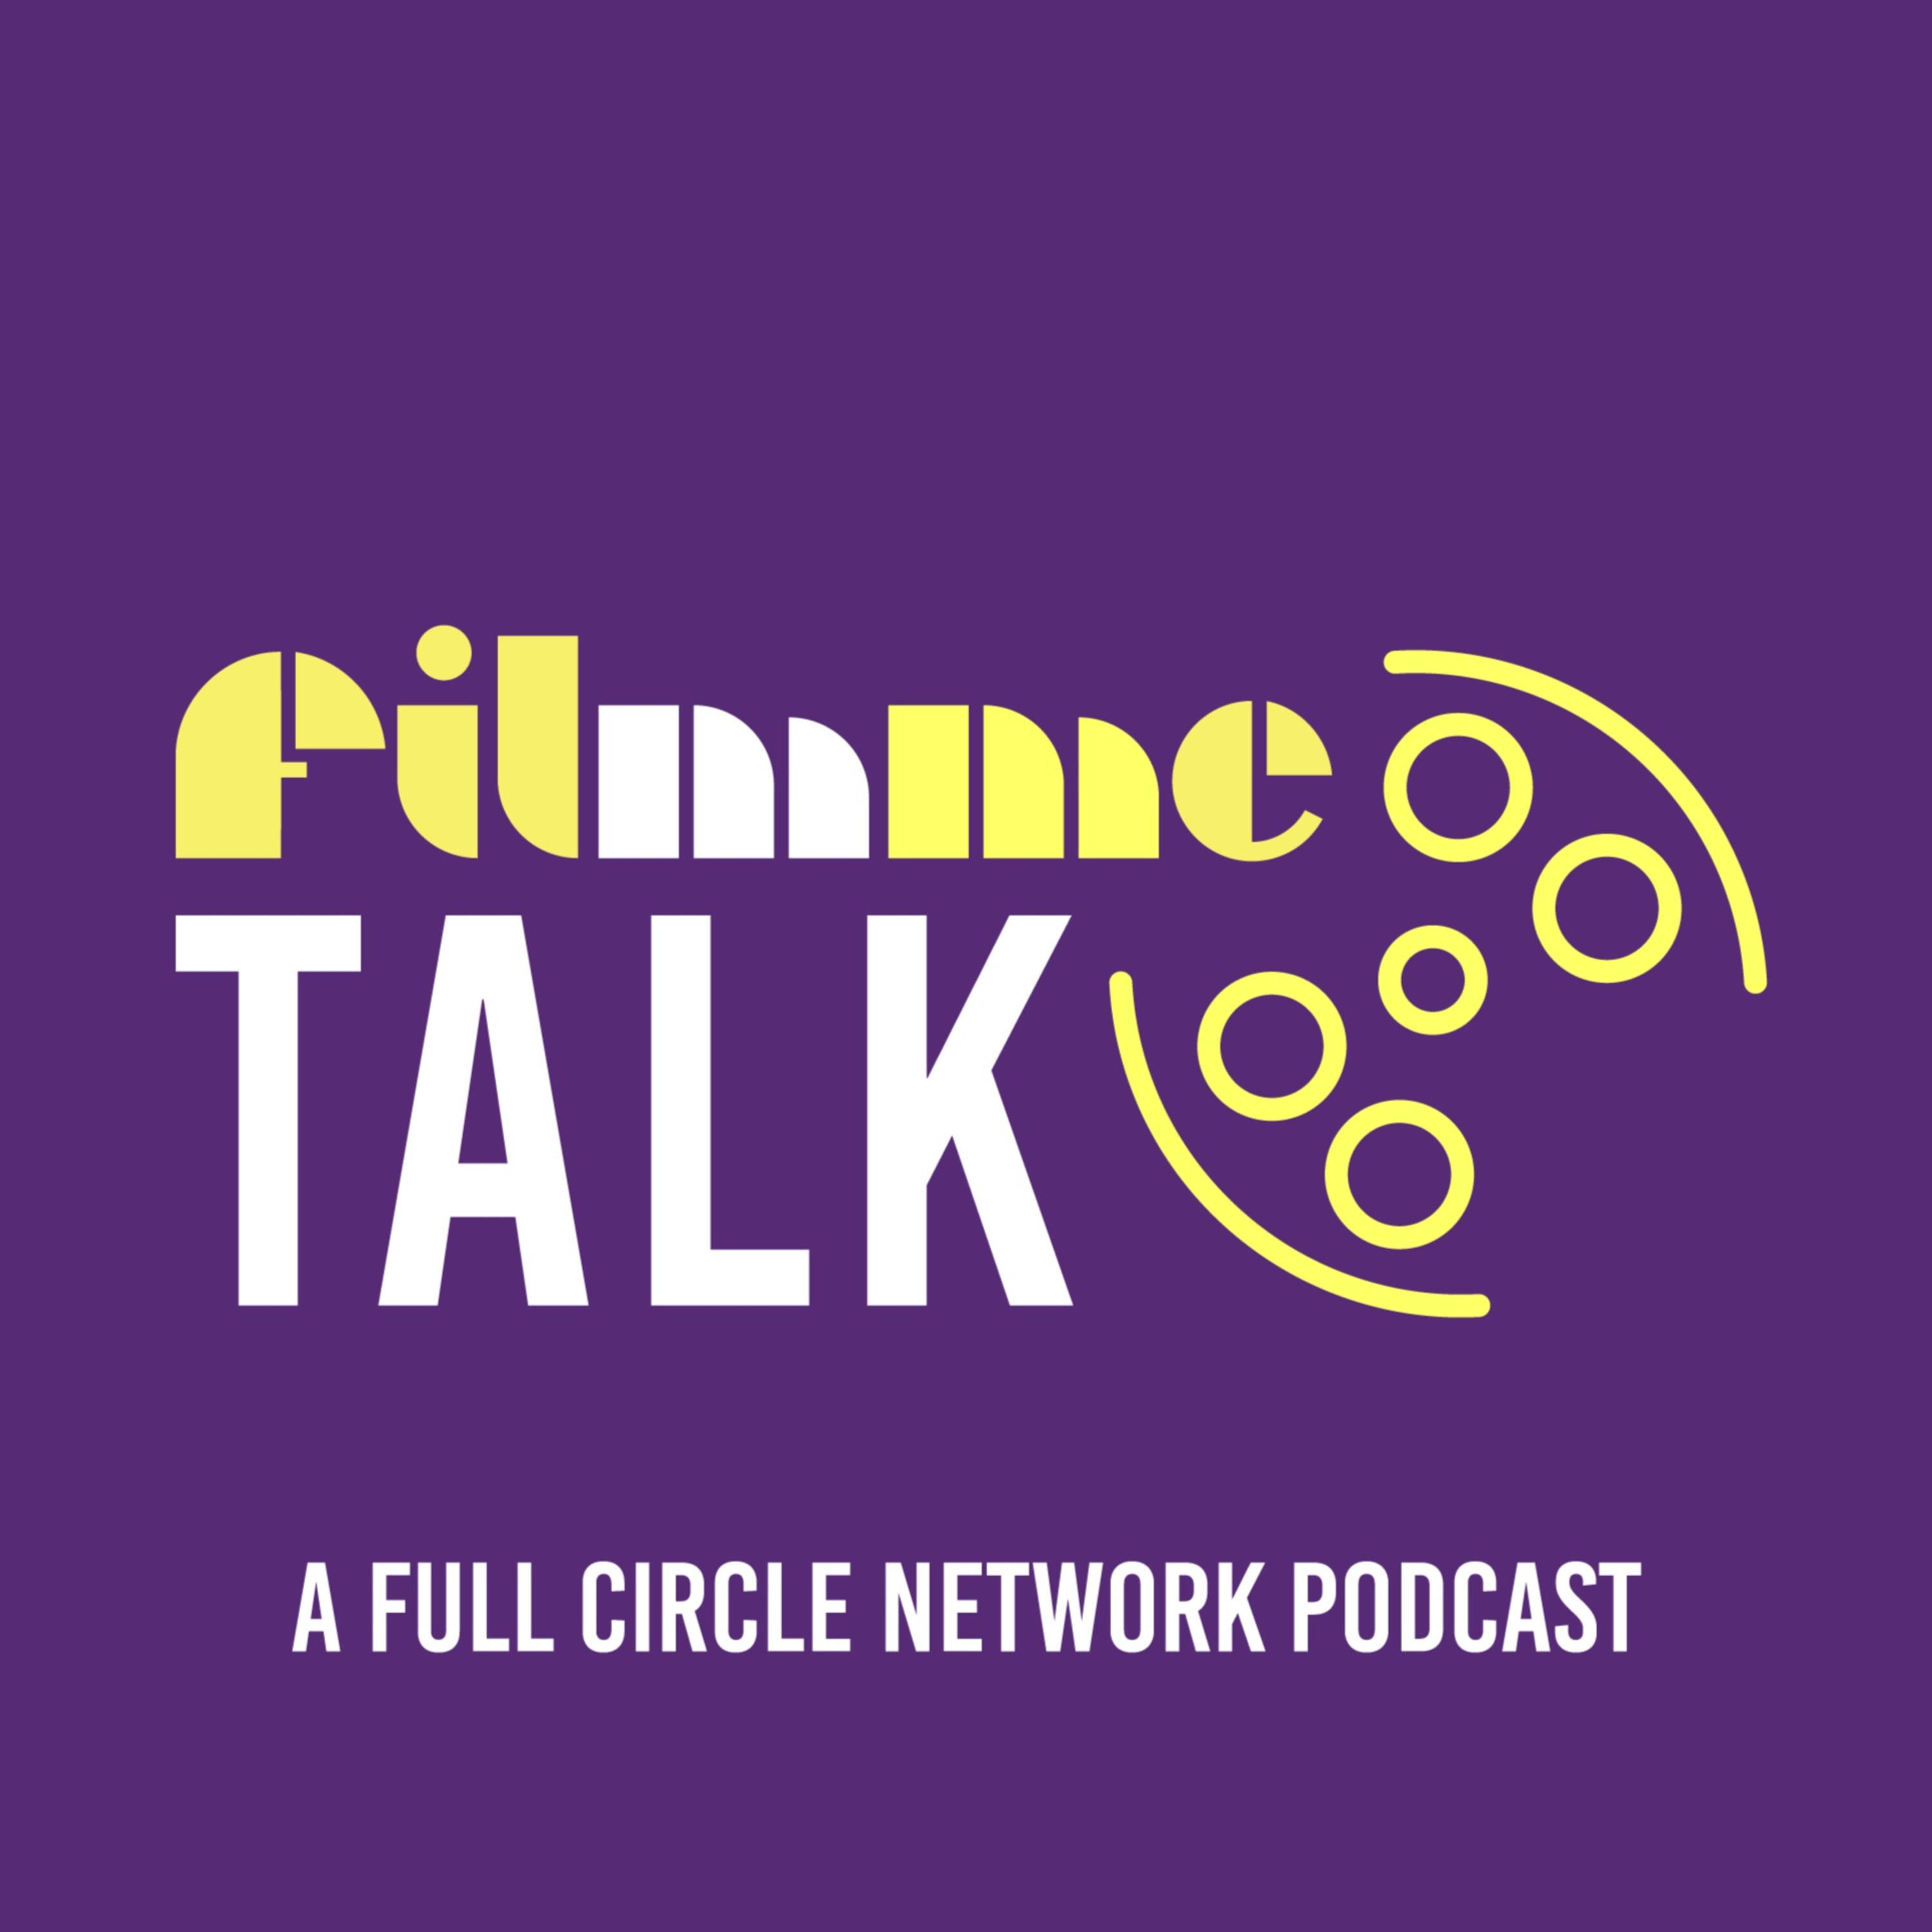 IN THE HEIGHTS REVIEW - Filmme Talk Ep. 14